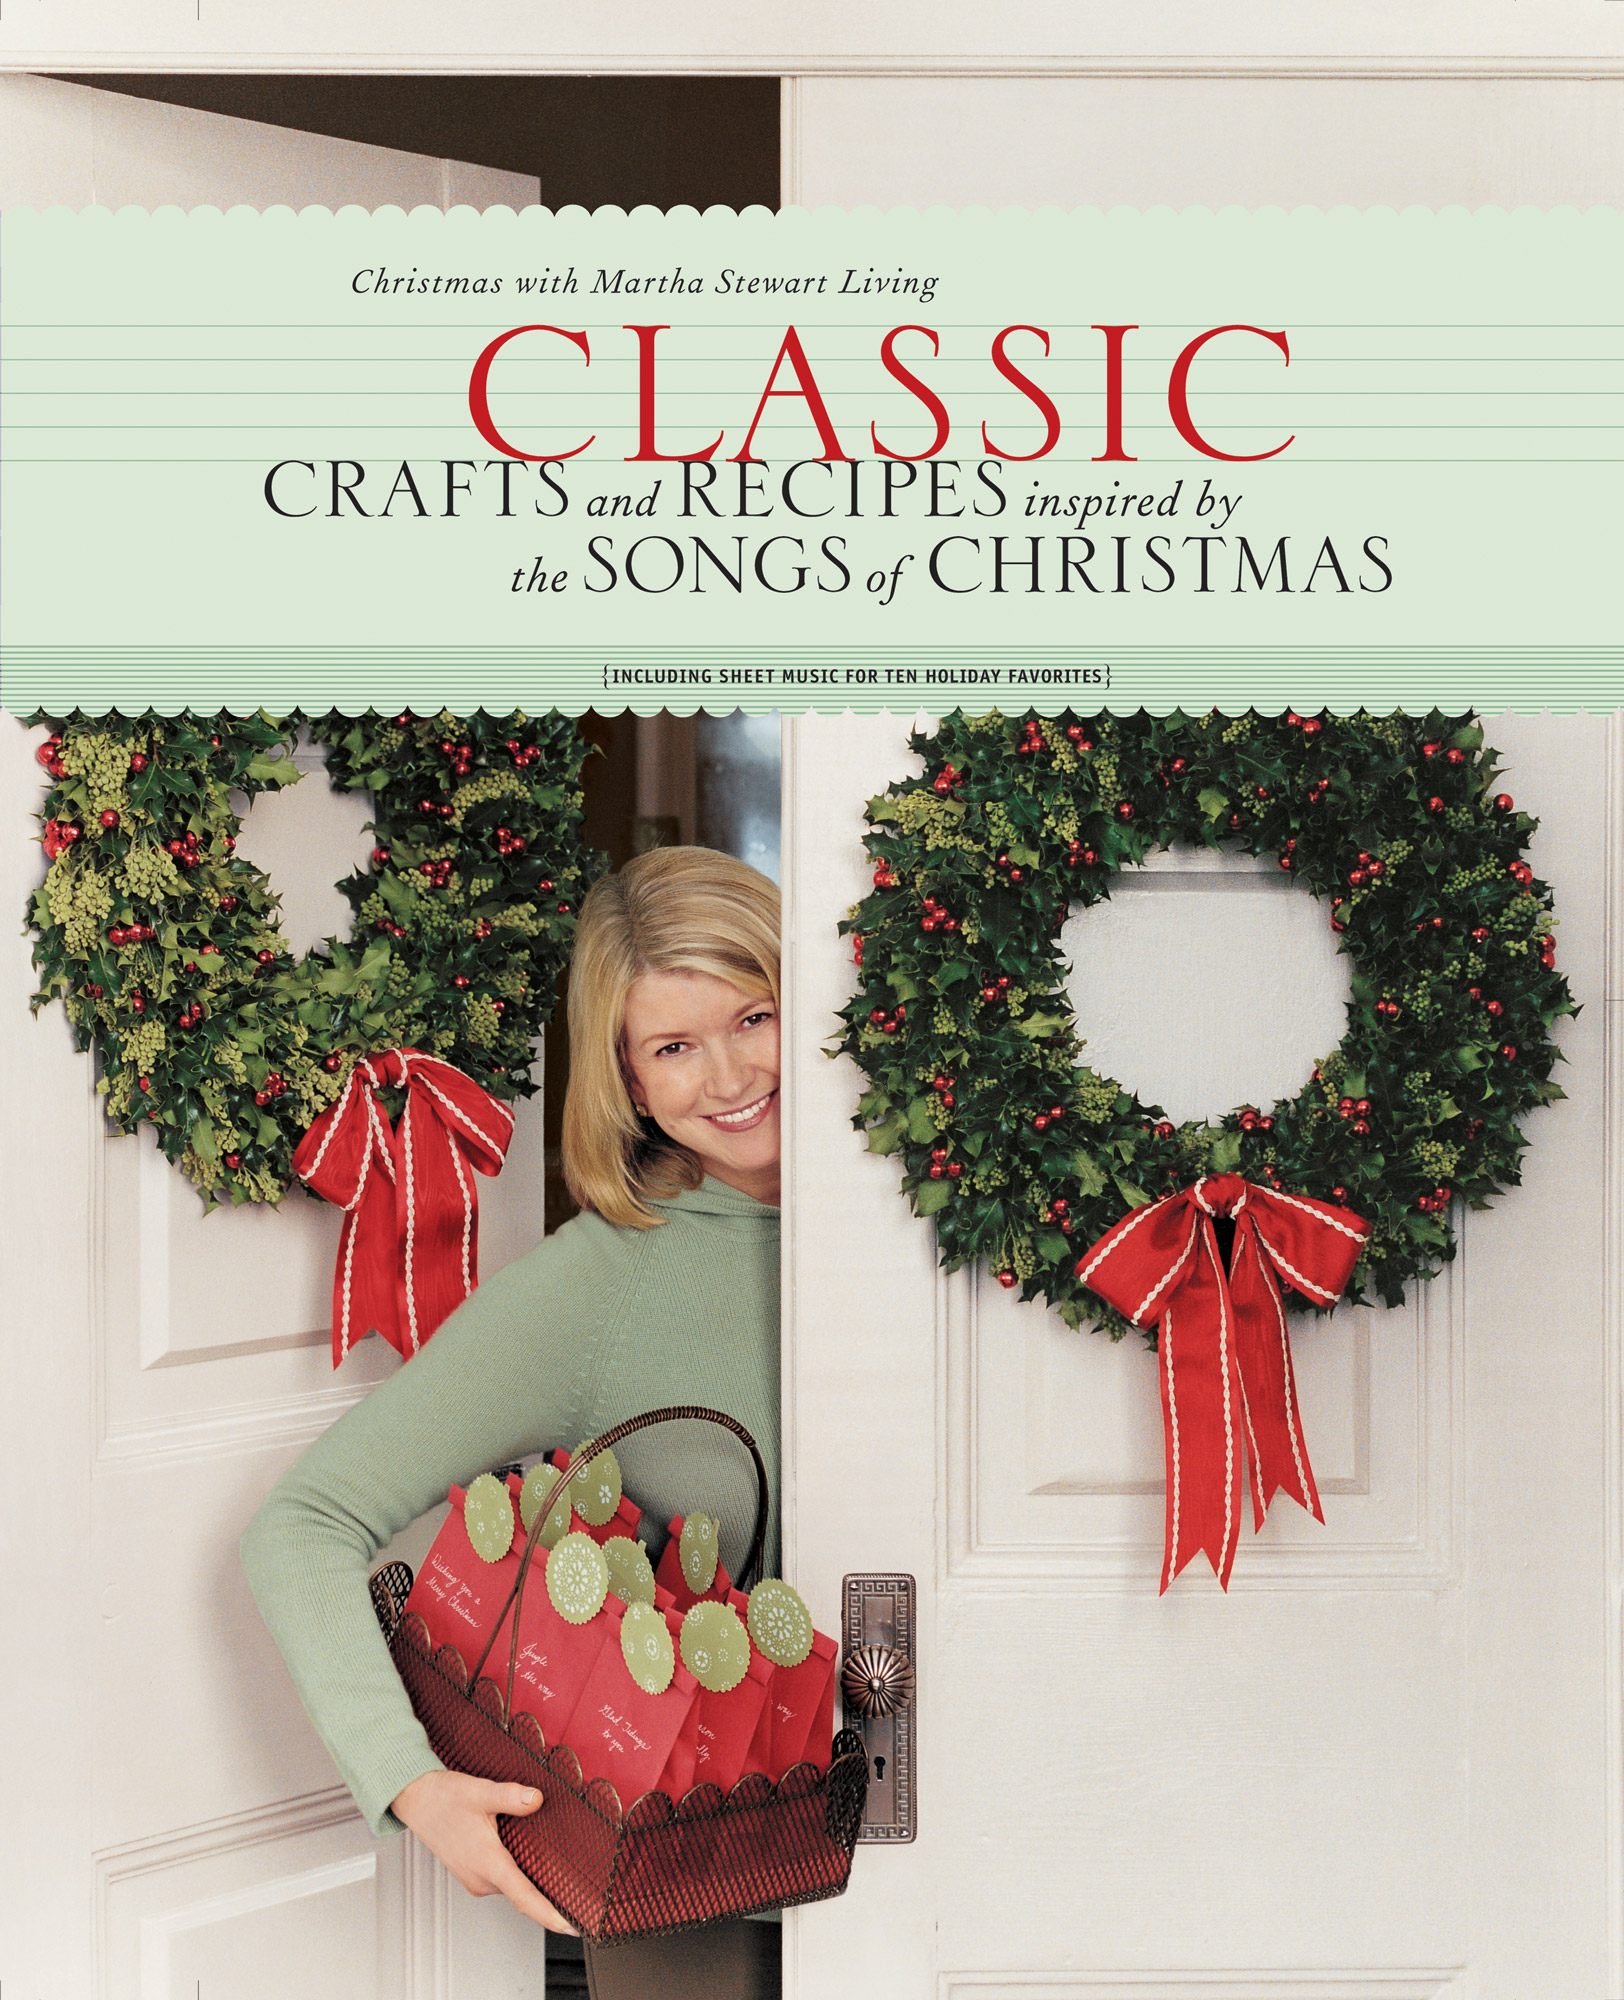 Christmas with Martha Stewart Living: Classic Crafts and Recipes Inspired by the Songs of Christmas